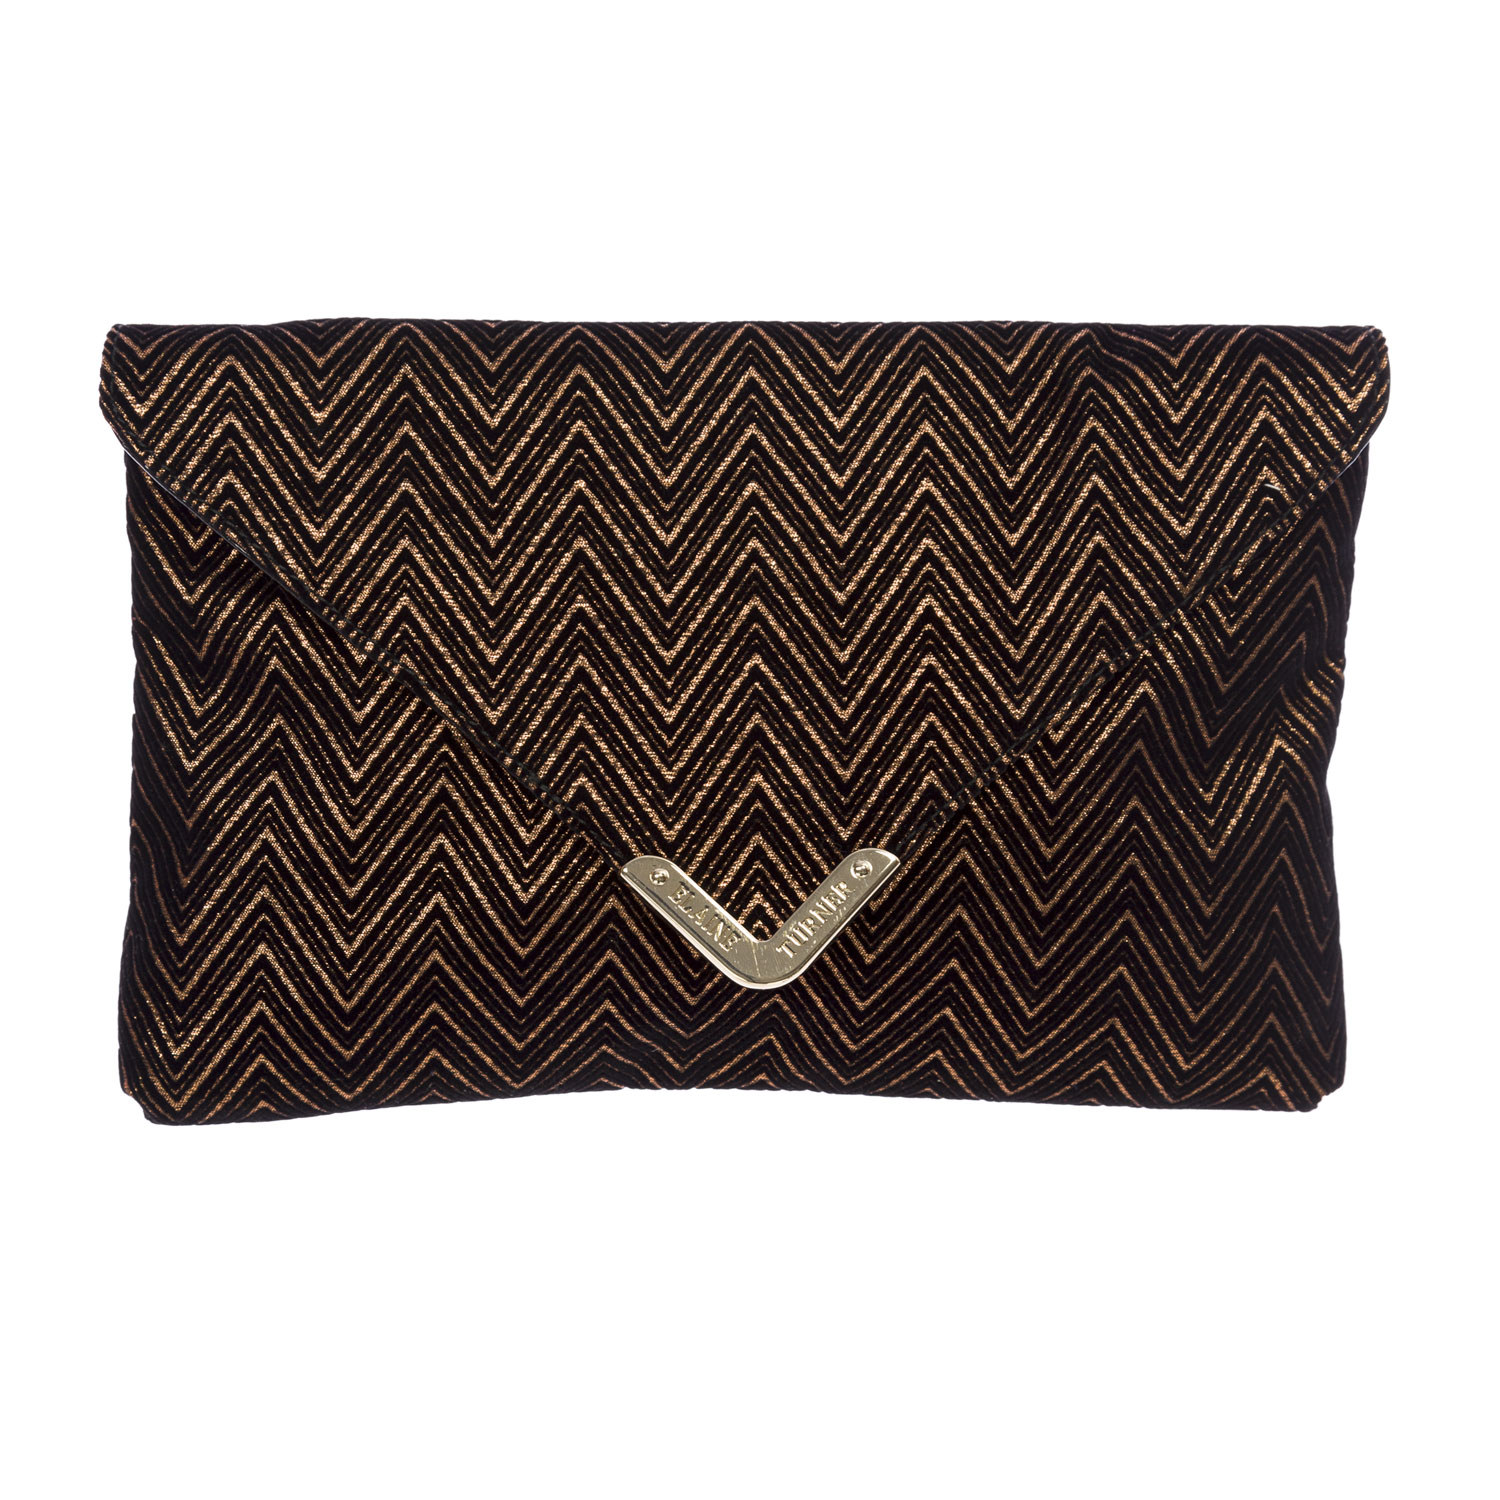 Elaine Turner Women's Velvet Zig Zag Bella Envelope Clutch Bag One Size Black & Copper